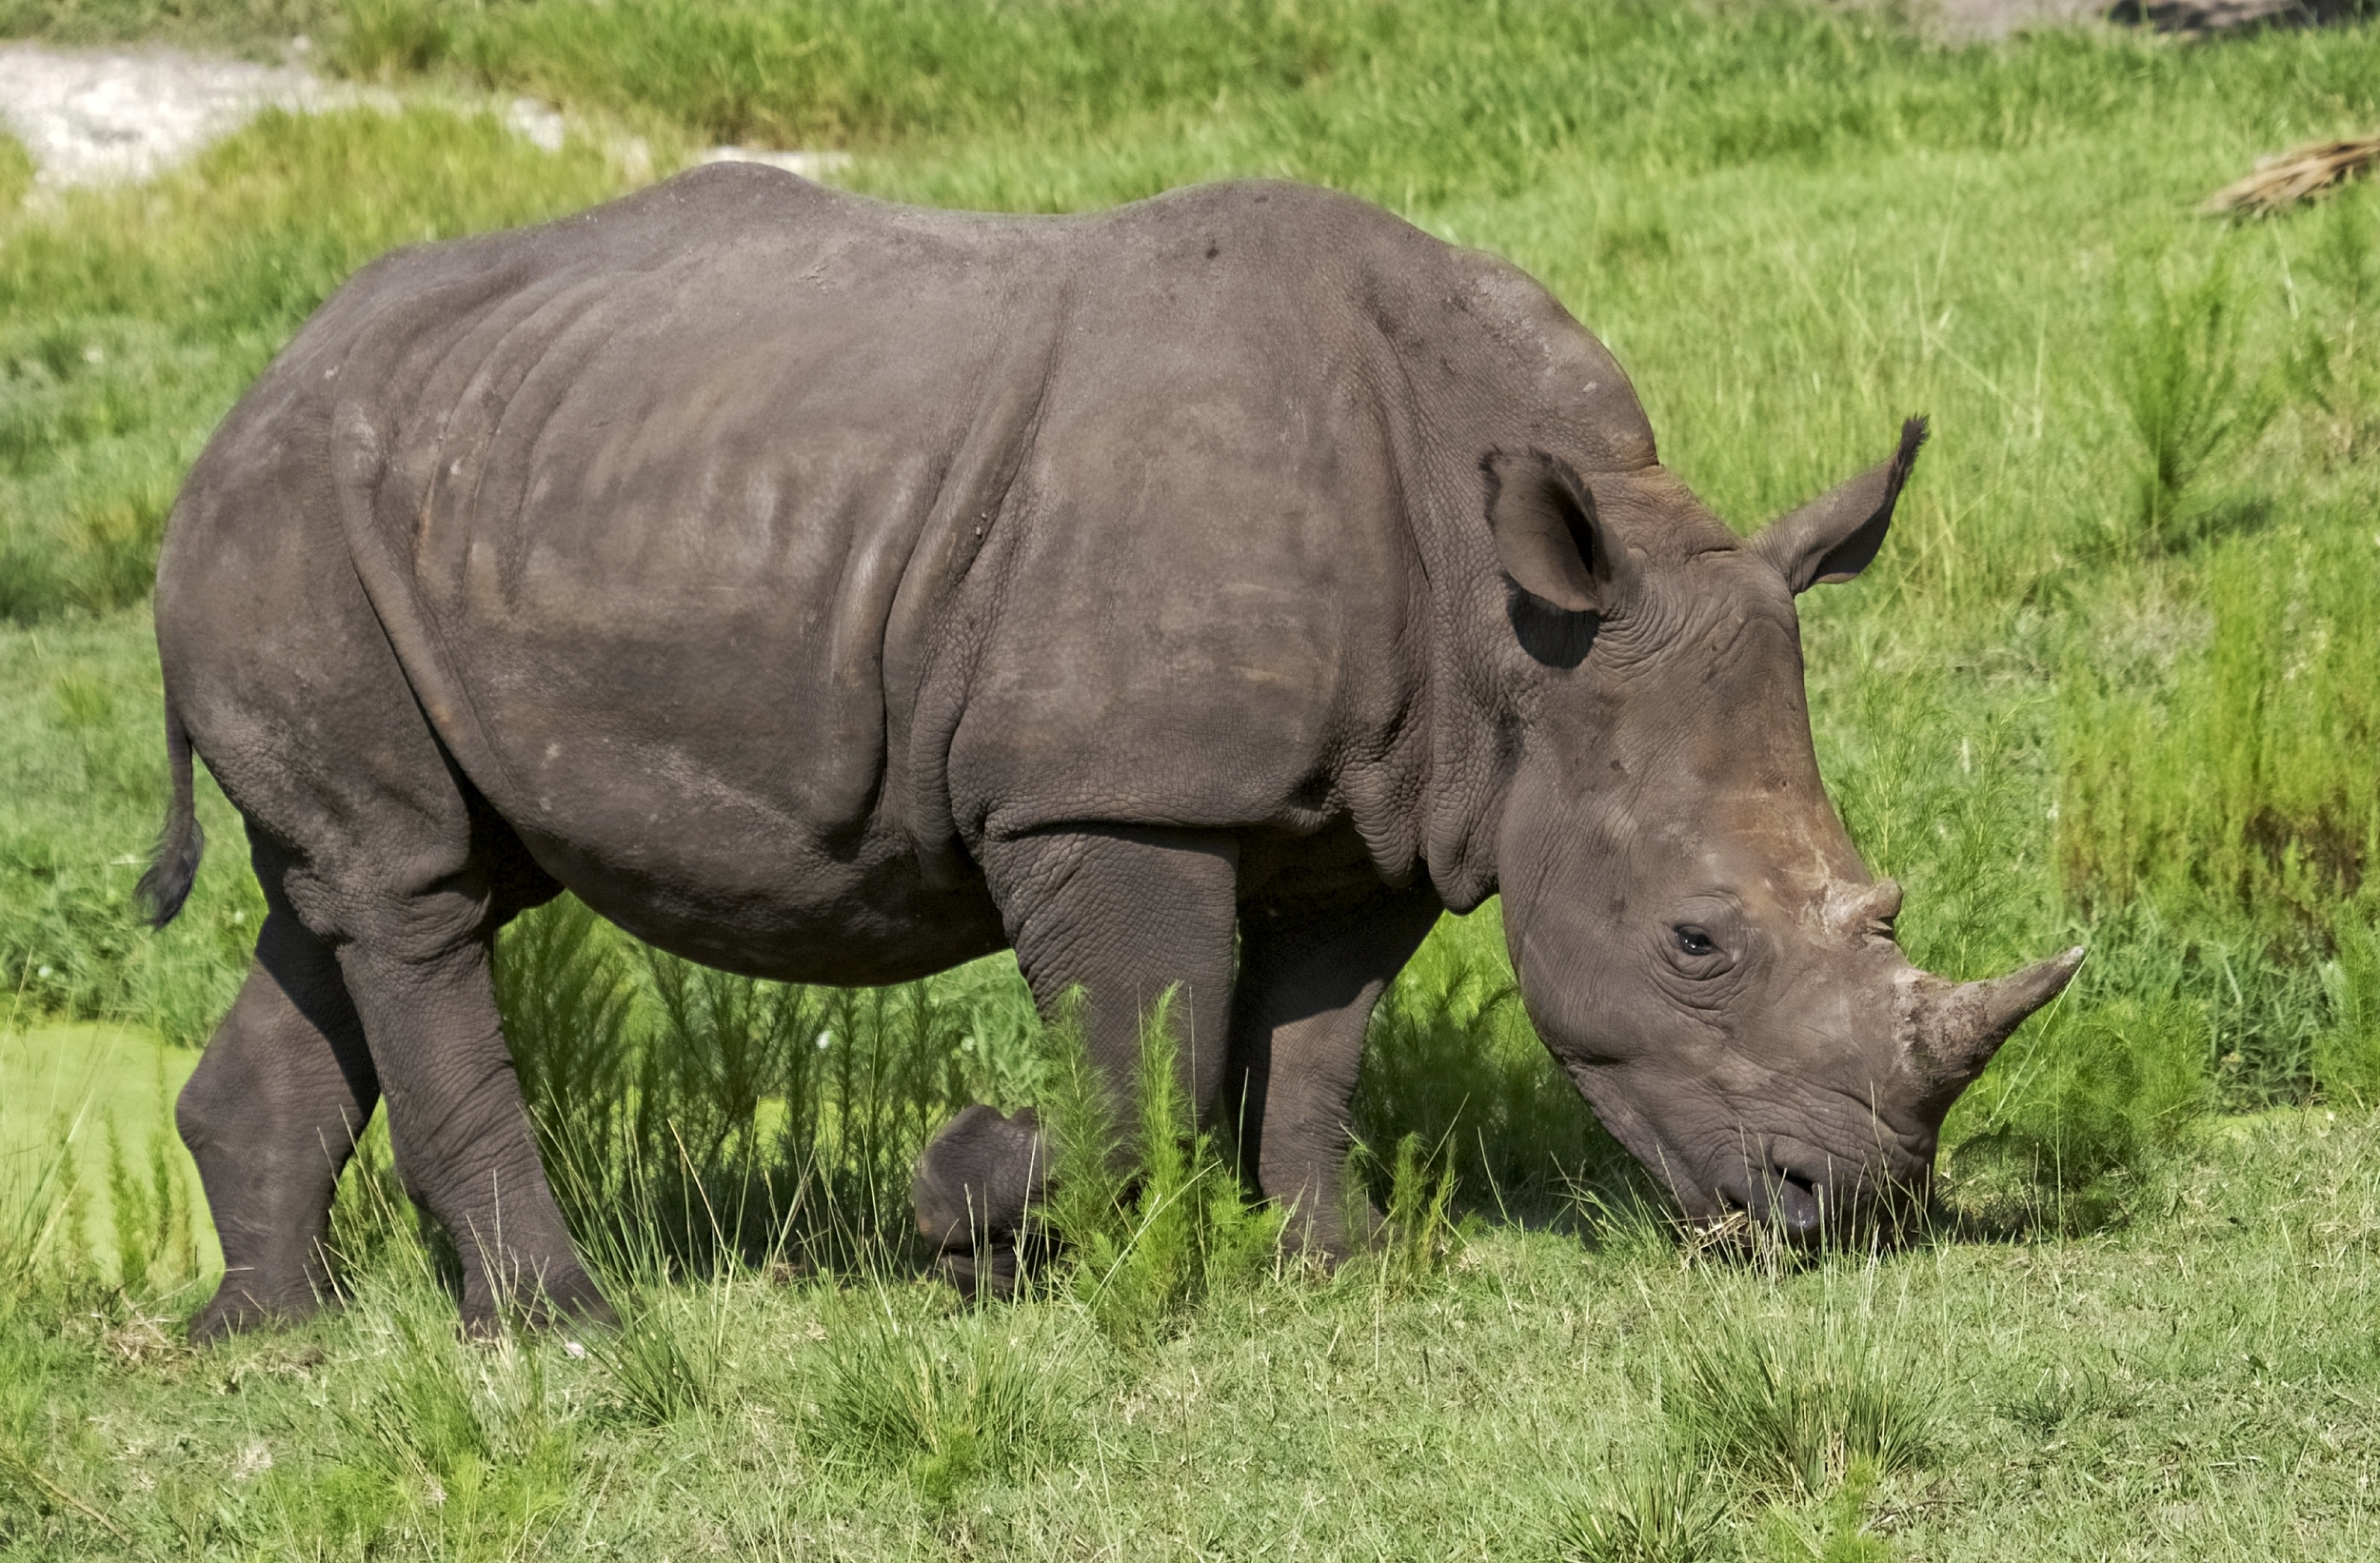 The Rhino eats some cool green grass instead..